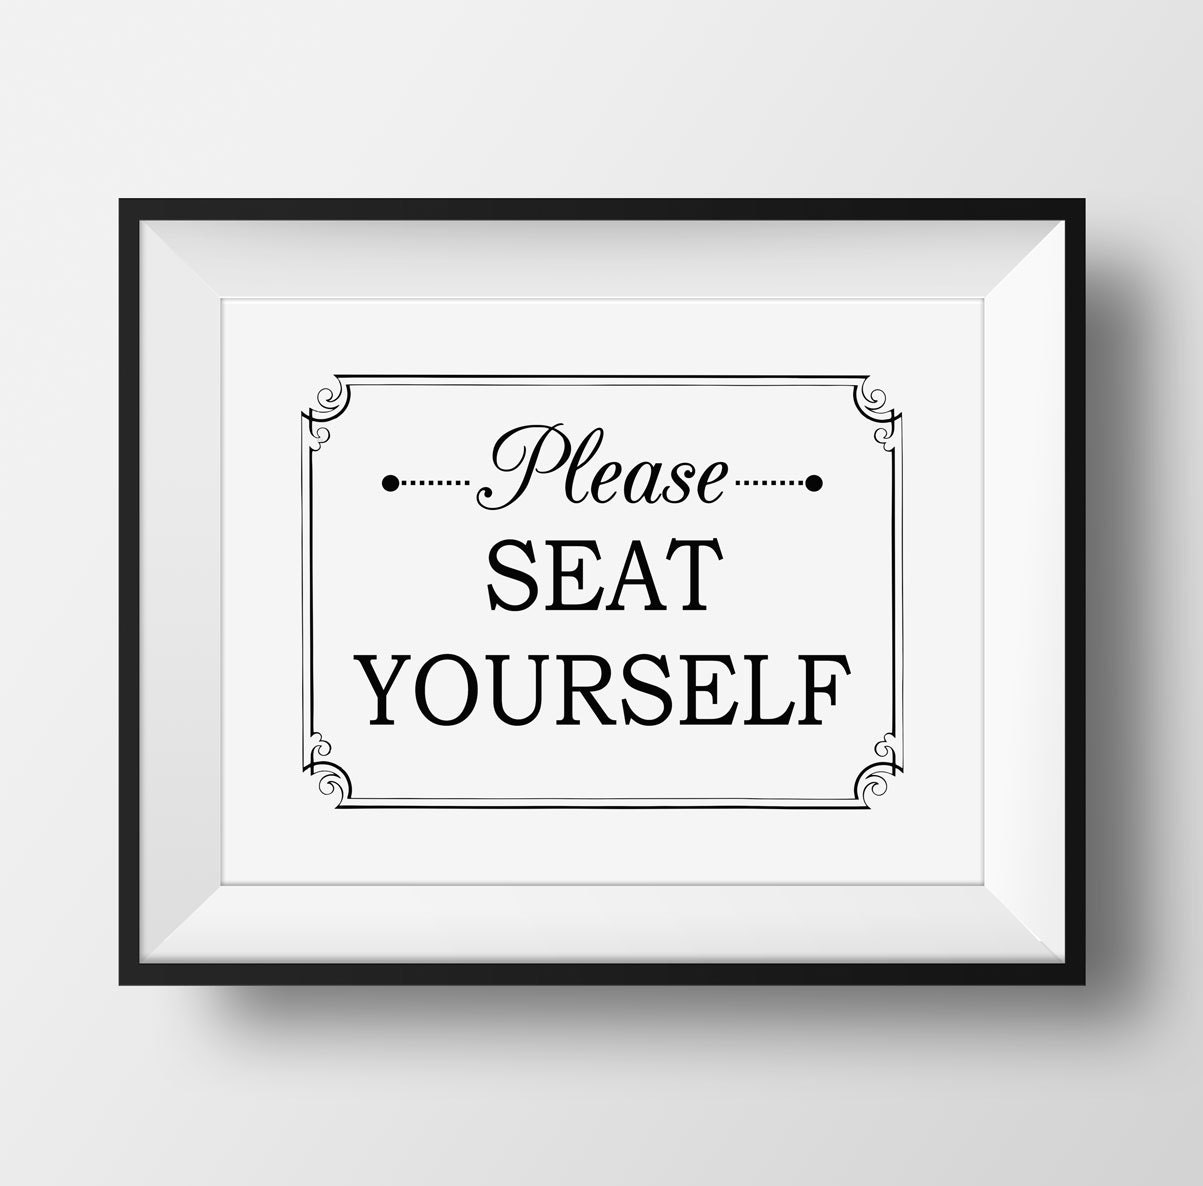 Bathroom wall art printables - Bathroom Wall Decor Please Seat Yourself Wall Art Funny Bathroom Art Funny Bathroom Sign Bathroom Art Bathroom Printable Toilet Sign